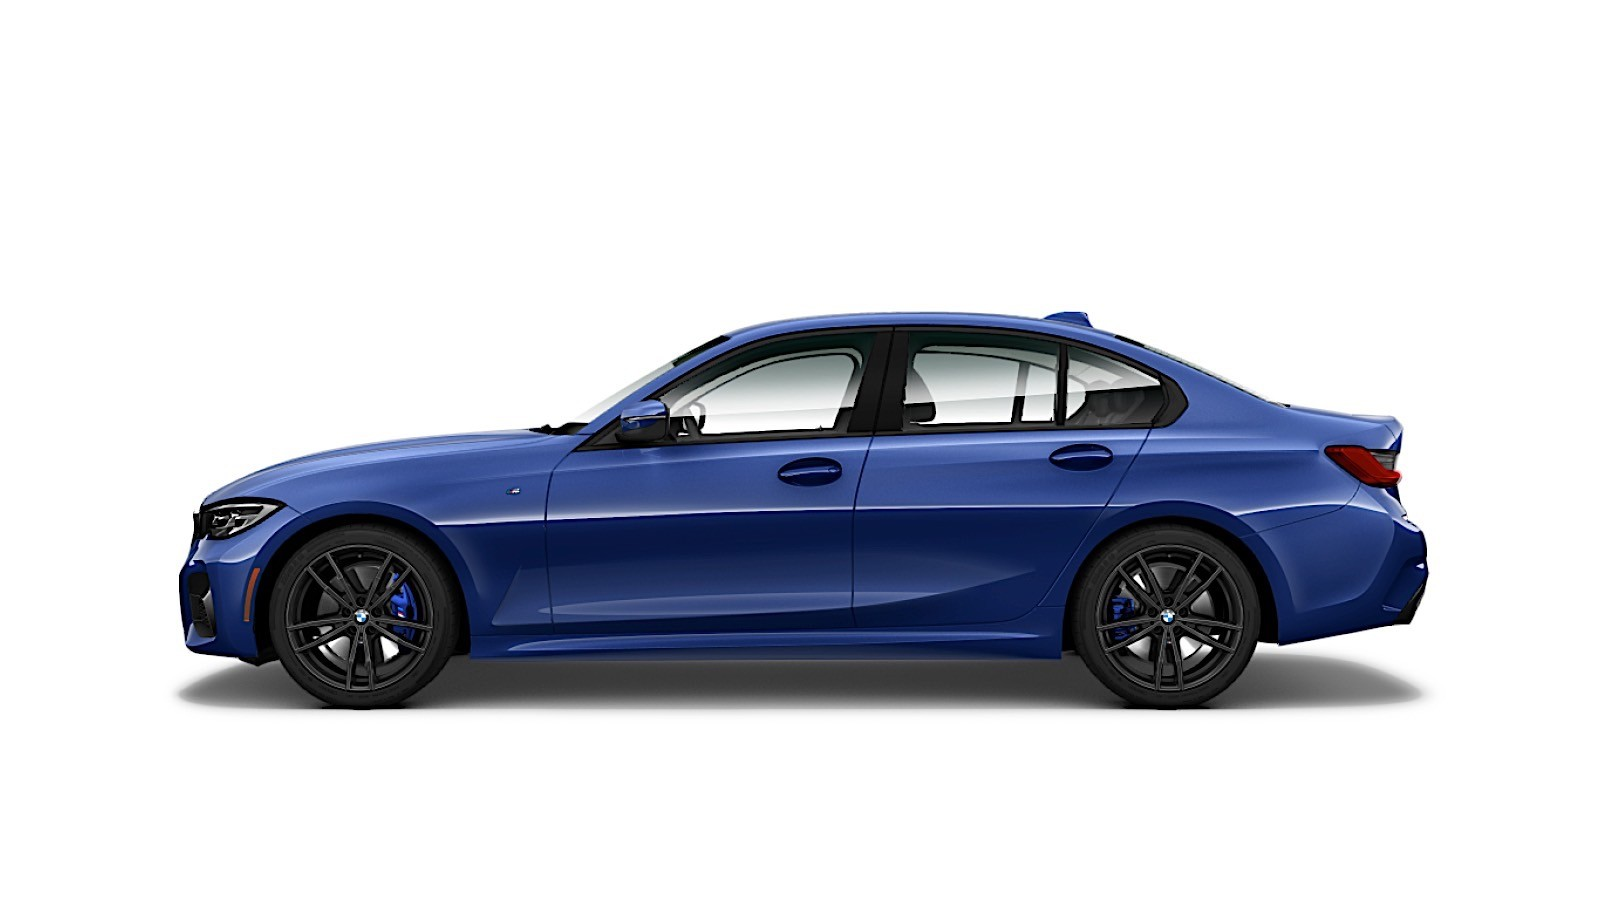 Bmw Serie 3 G20 >> 2019 BMW 3 Series Photos Leaked, M340i M Performance Shows Its Face - autoevolution